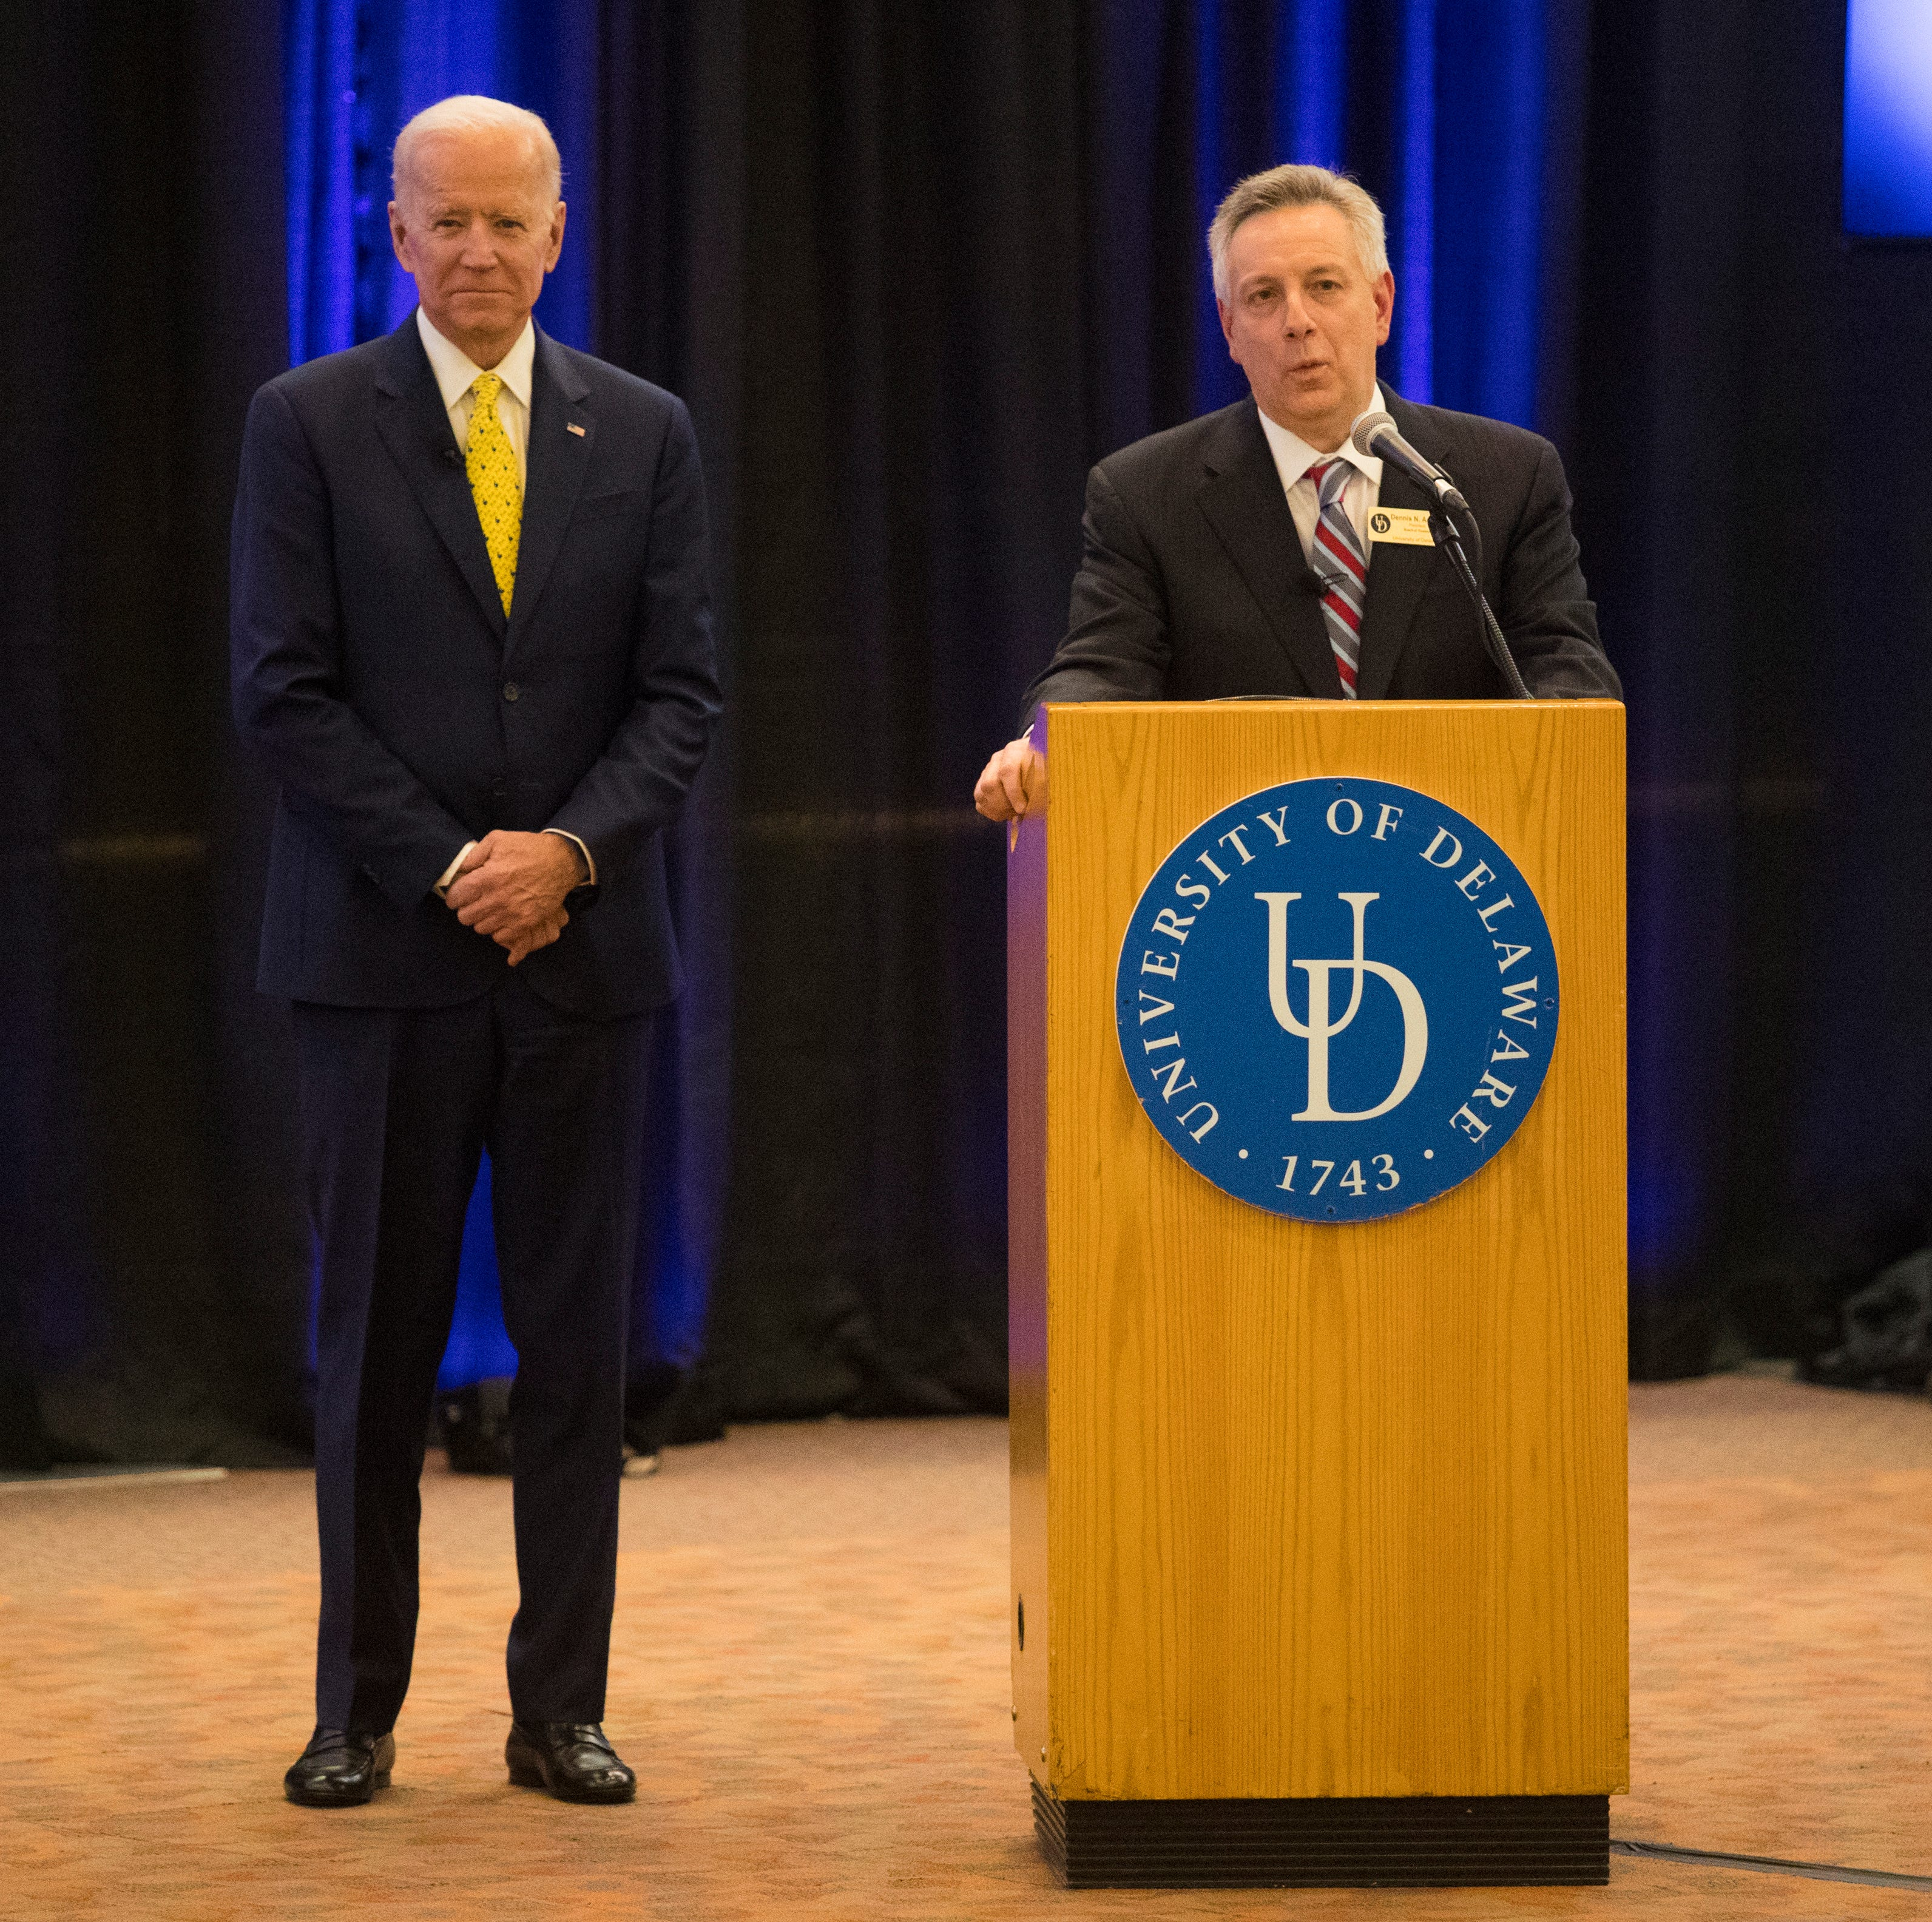 University of Delaware's School of Public Policy renamed for Joe Biden